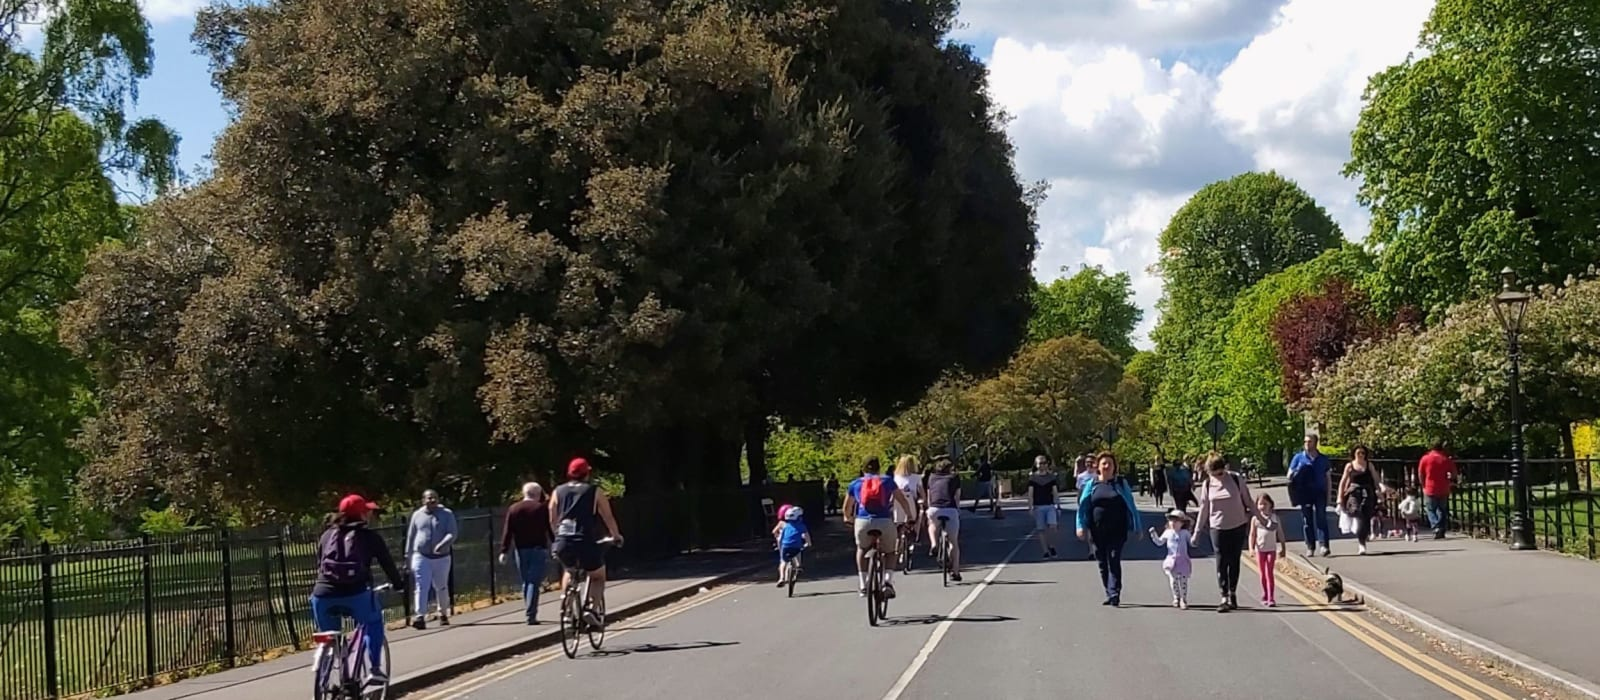 Phoenix Park - Encouraging Active Travel and Curtailing Car Parking